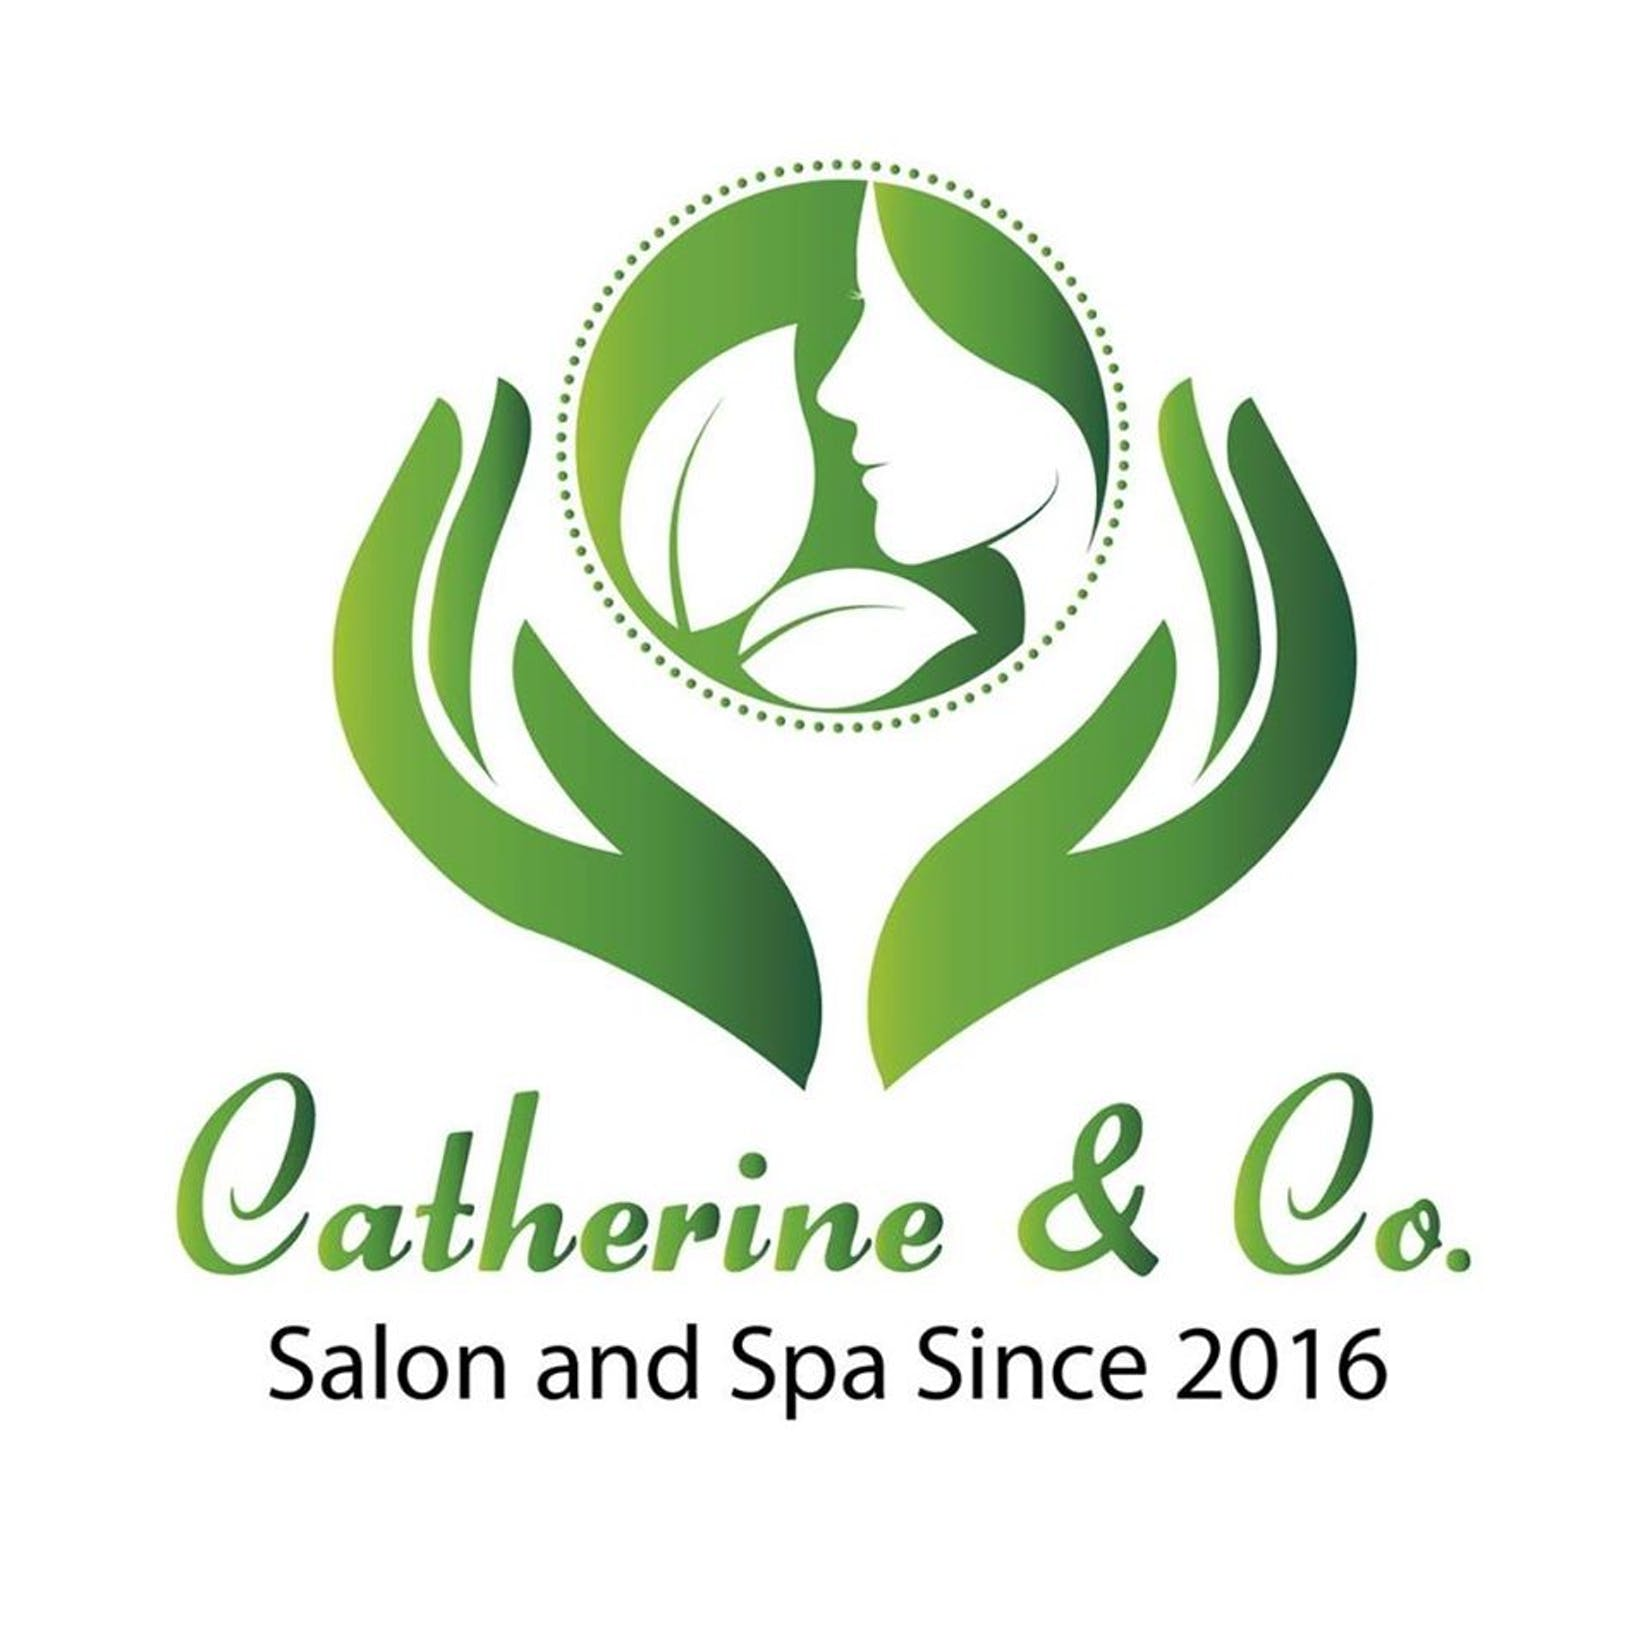 Catherine & Co. Salon and Spa Since 2016 | Beauty